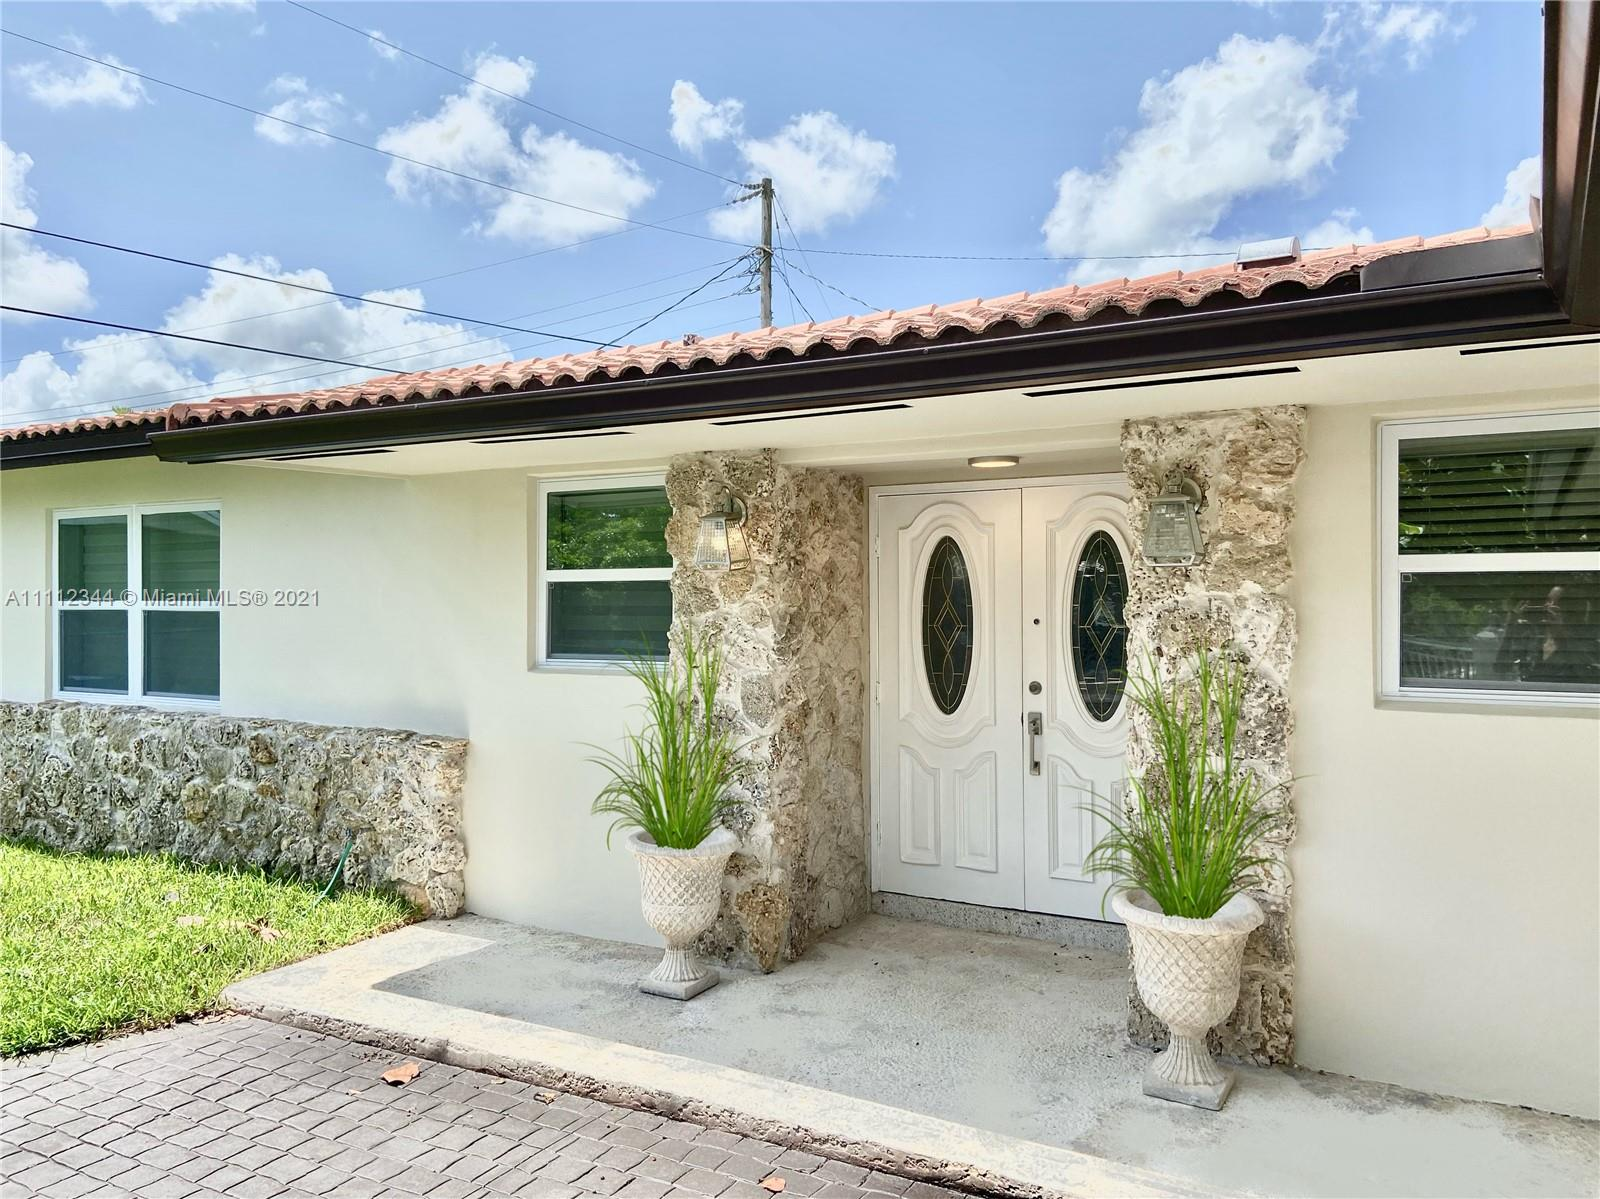 Single Family Home,For Rent,4400 SW 89th Ave, Miami, Florida 33165,Brickell,realty,broker,condos near me